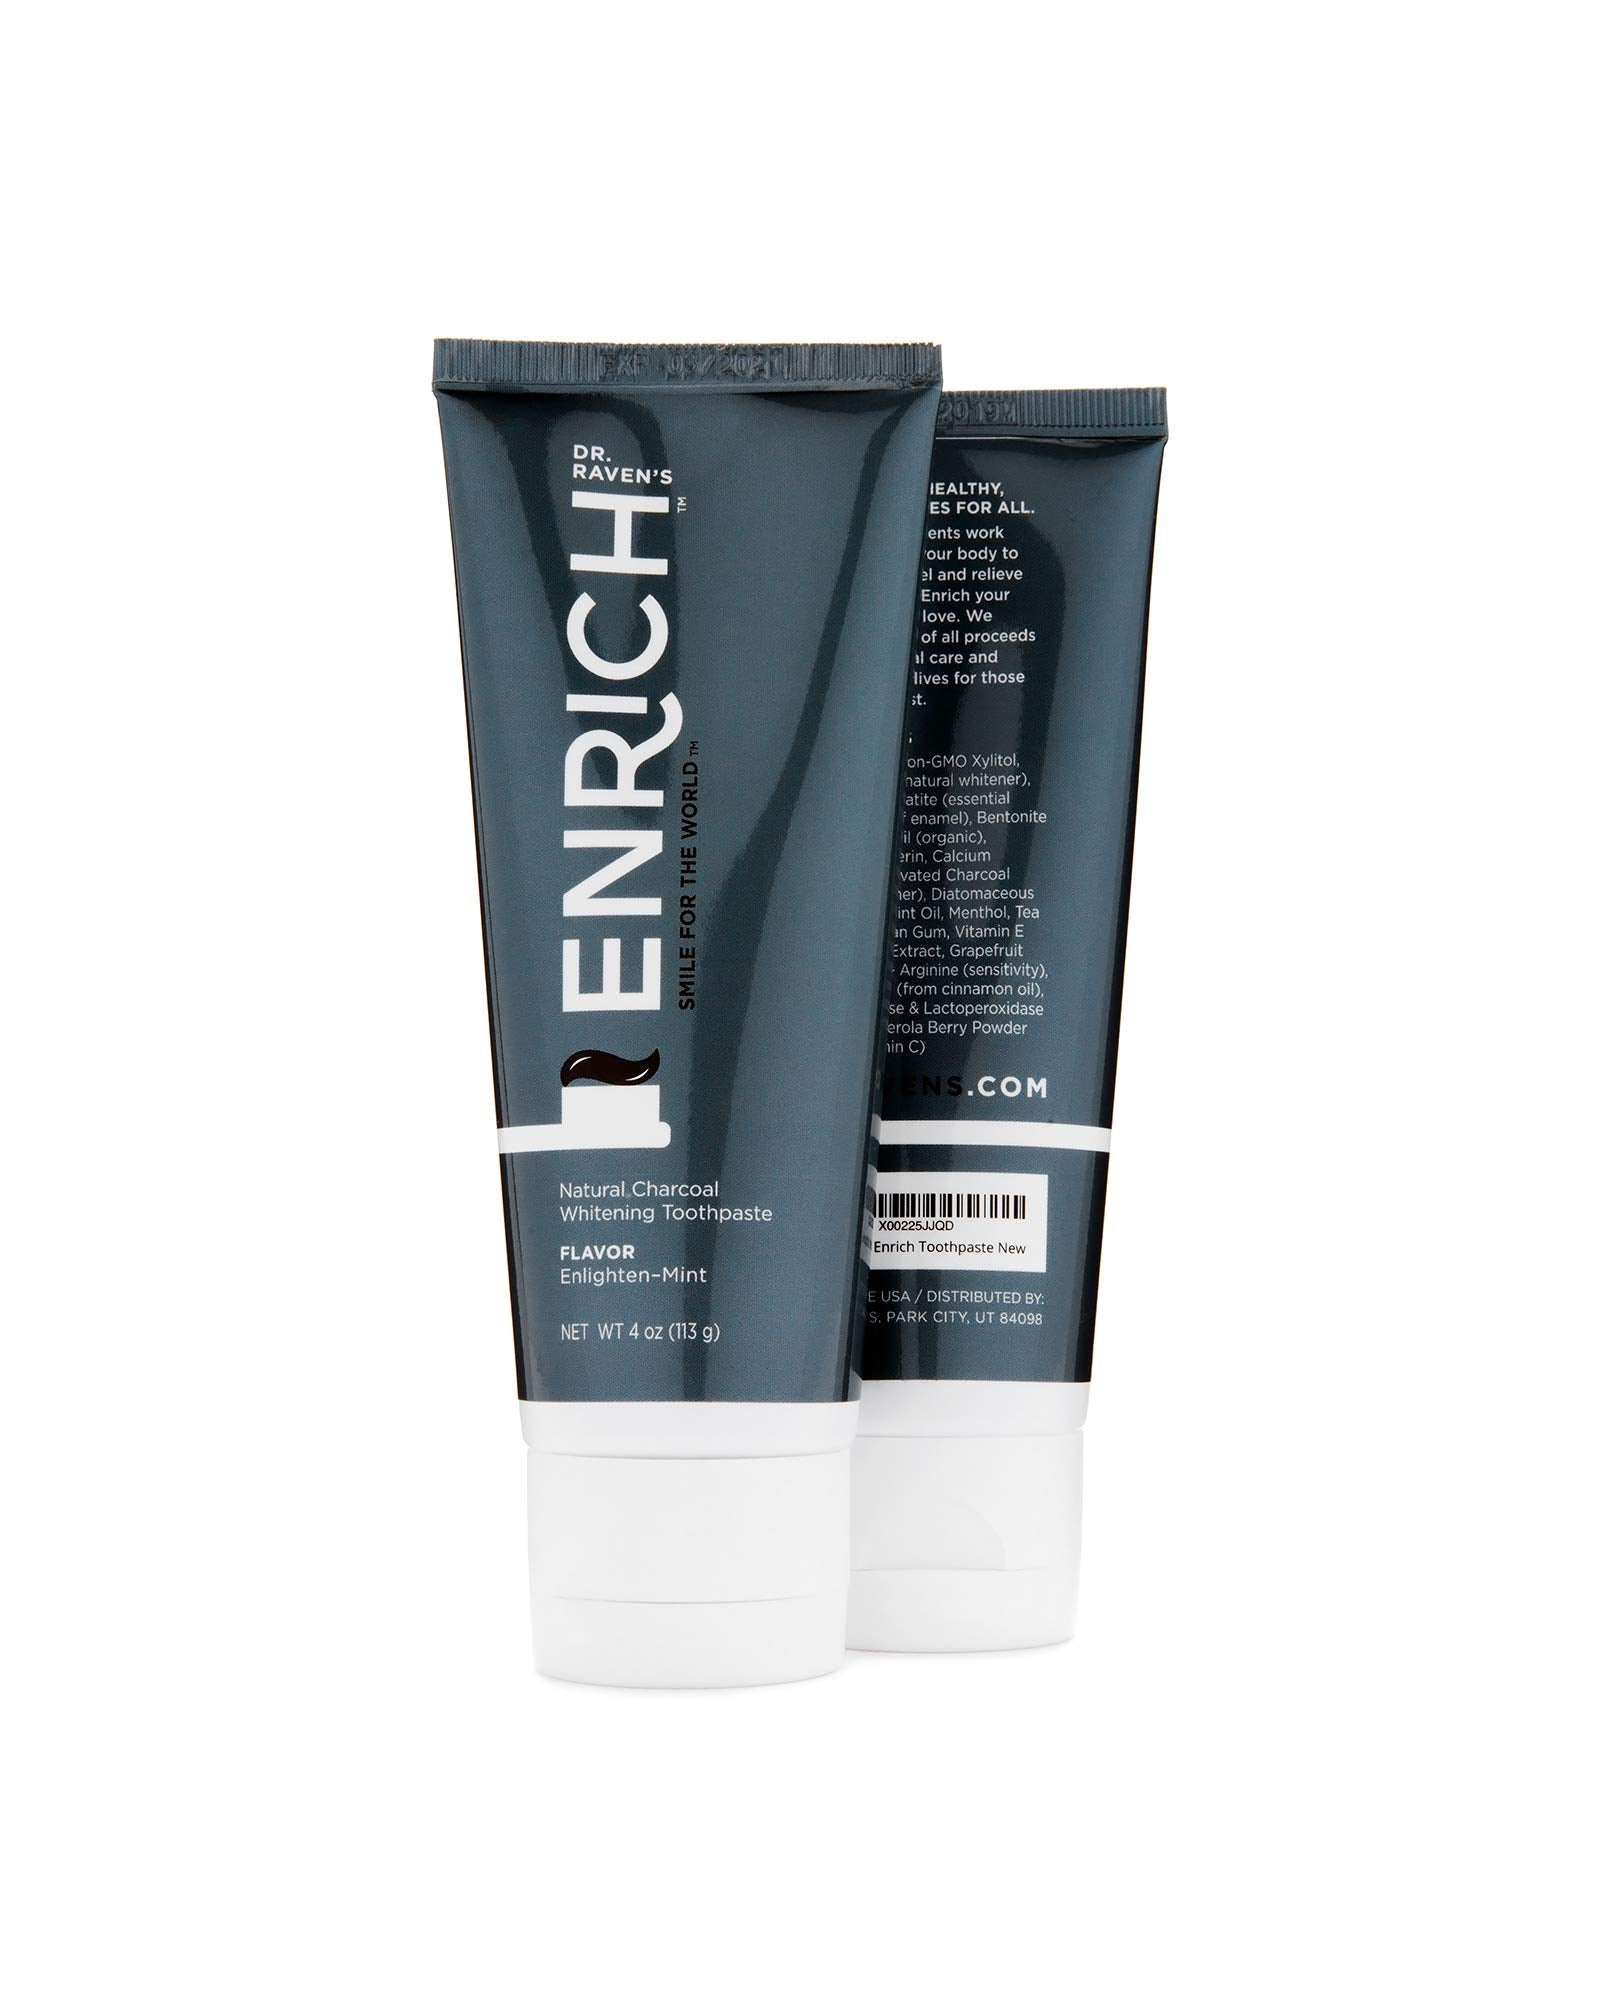 Enrich ORGANIC WHITENING COCONUT OIL Toothpaste - ACTIVATED CHARCOAL - EFFECTIVE for even SENSITIVE TEETH - KID SAFE - Fluoride Free with protective Enzymes - Made in USA